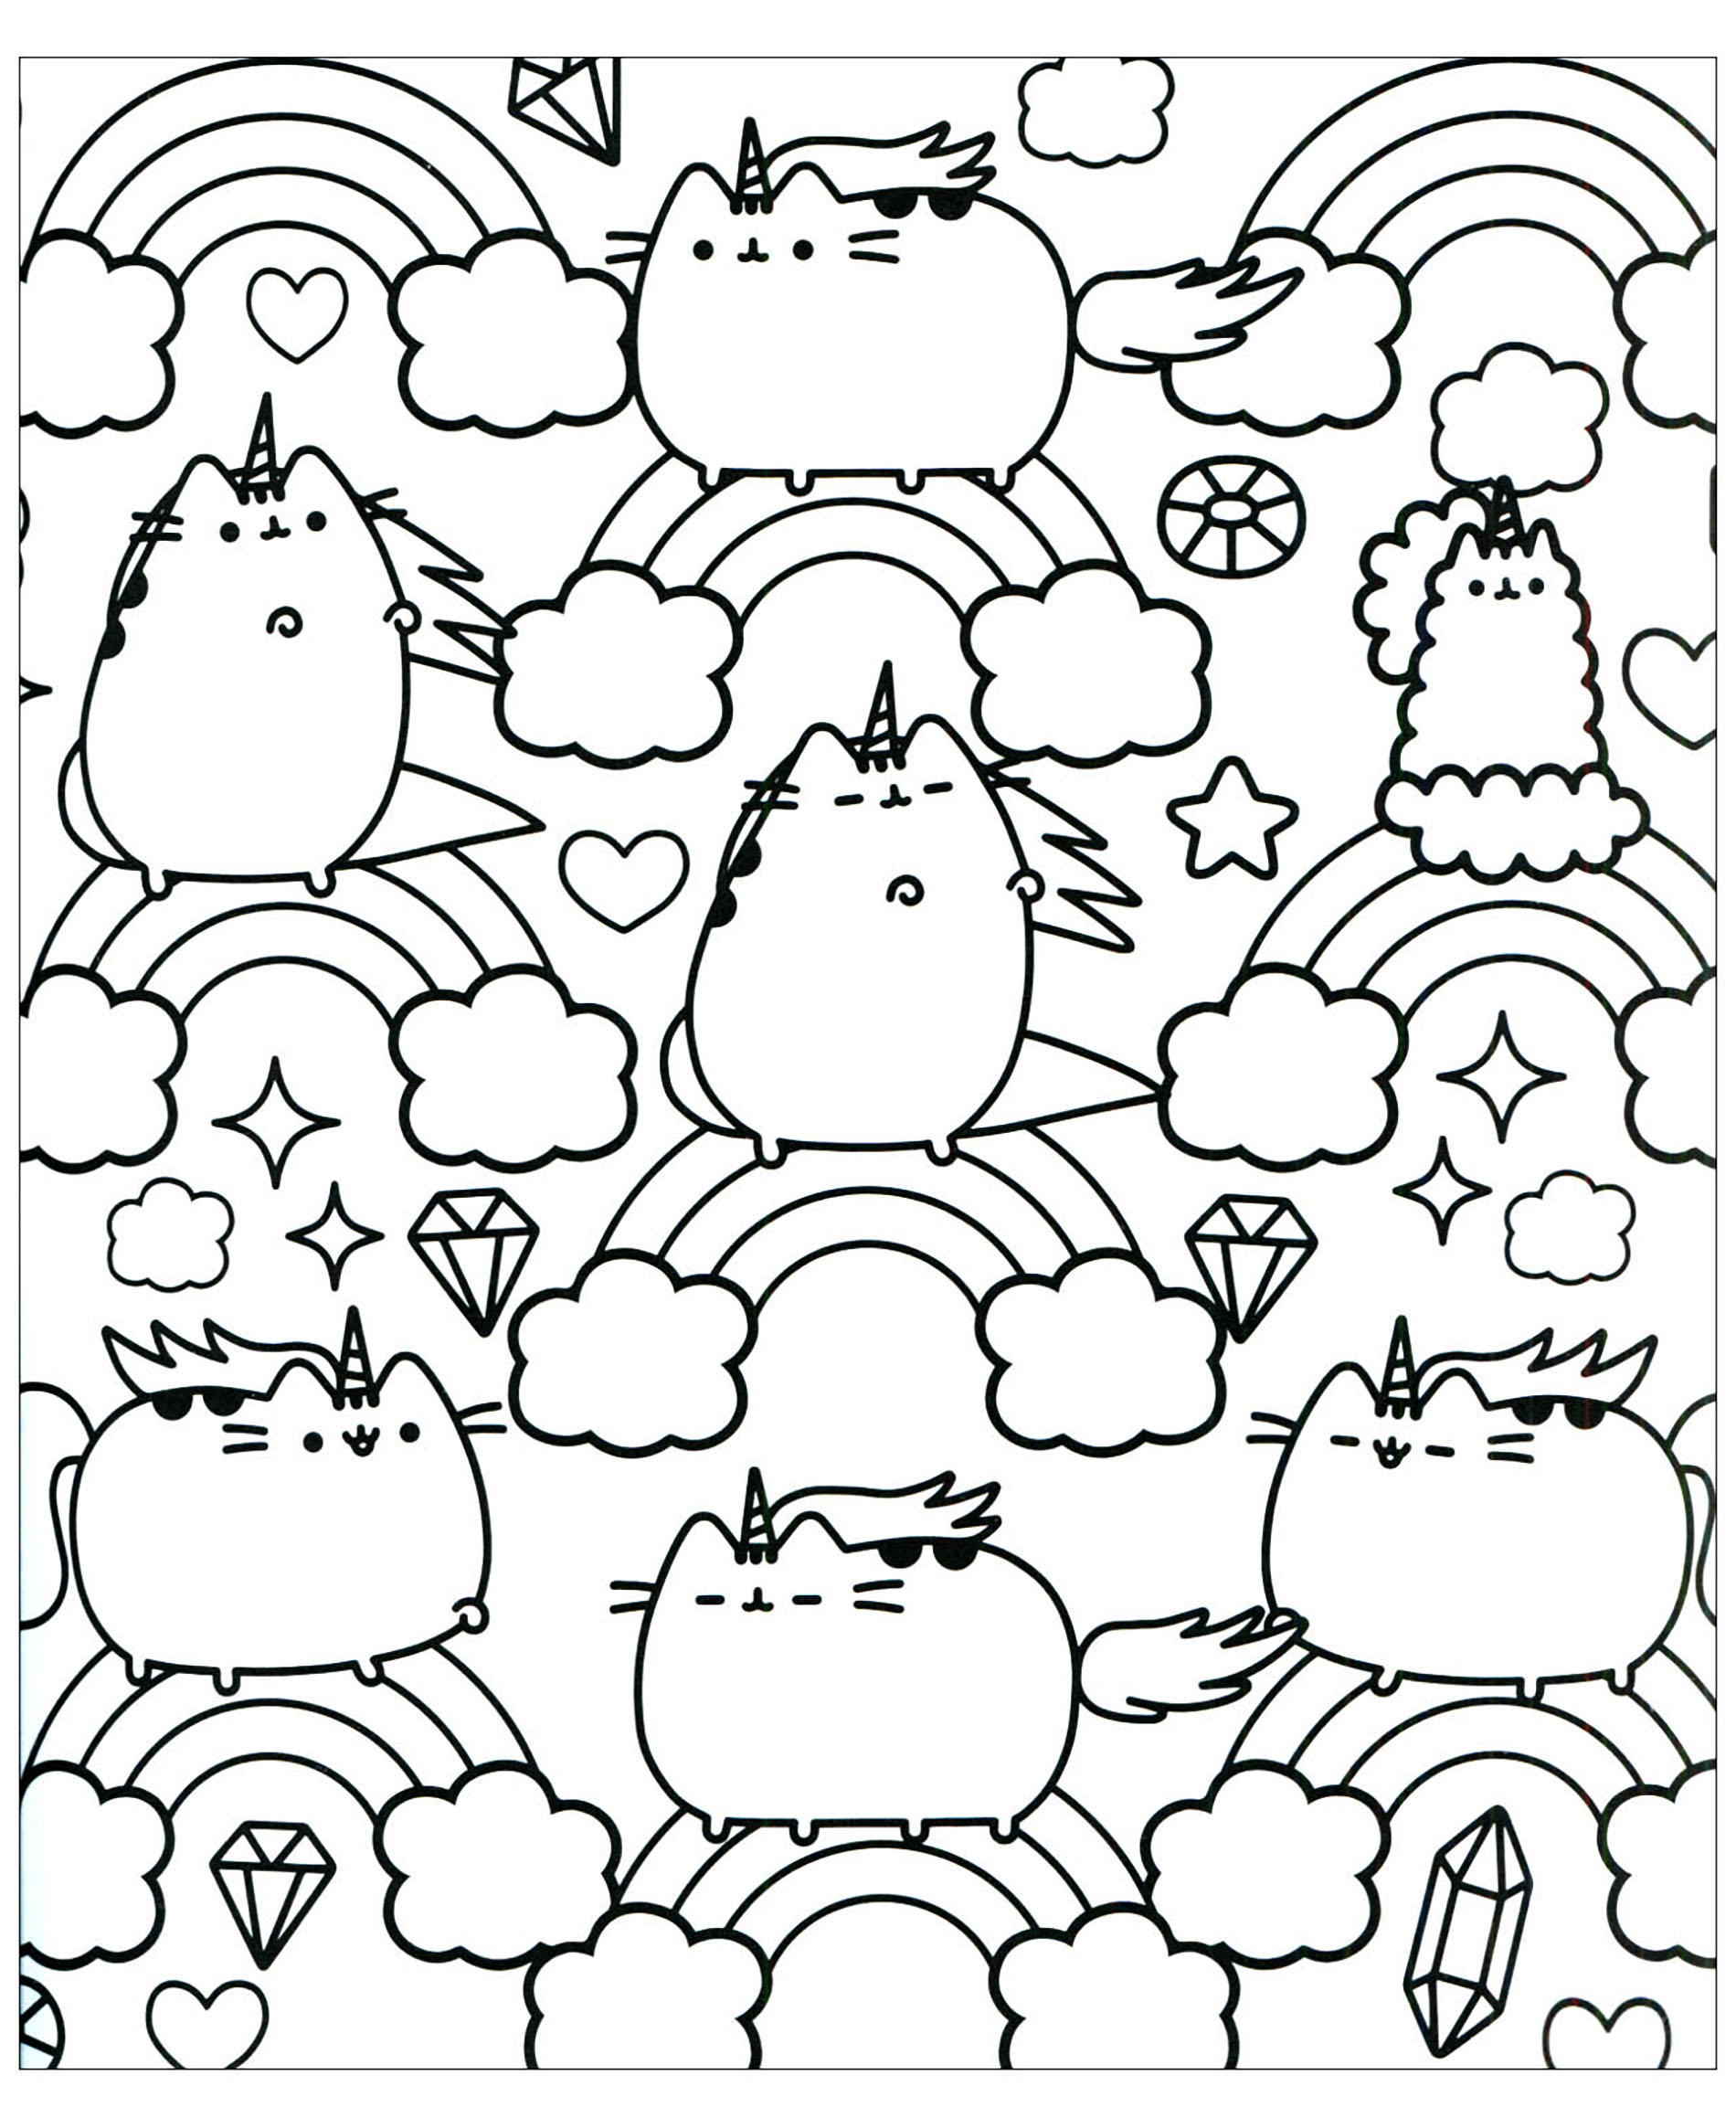 Impertinent image within pusheen coloring pages printable